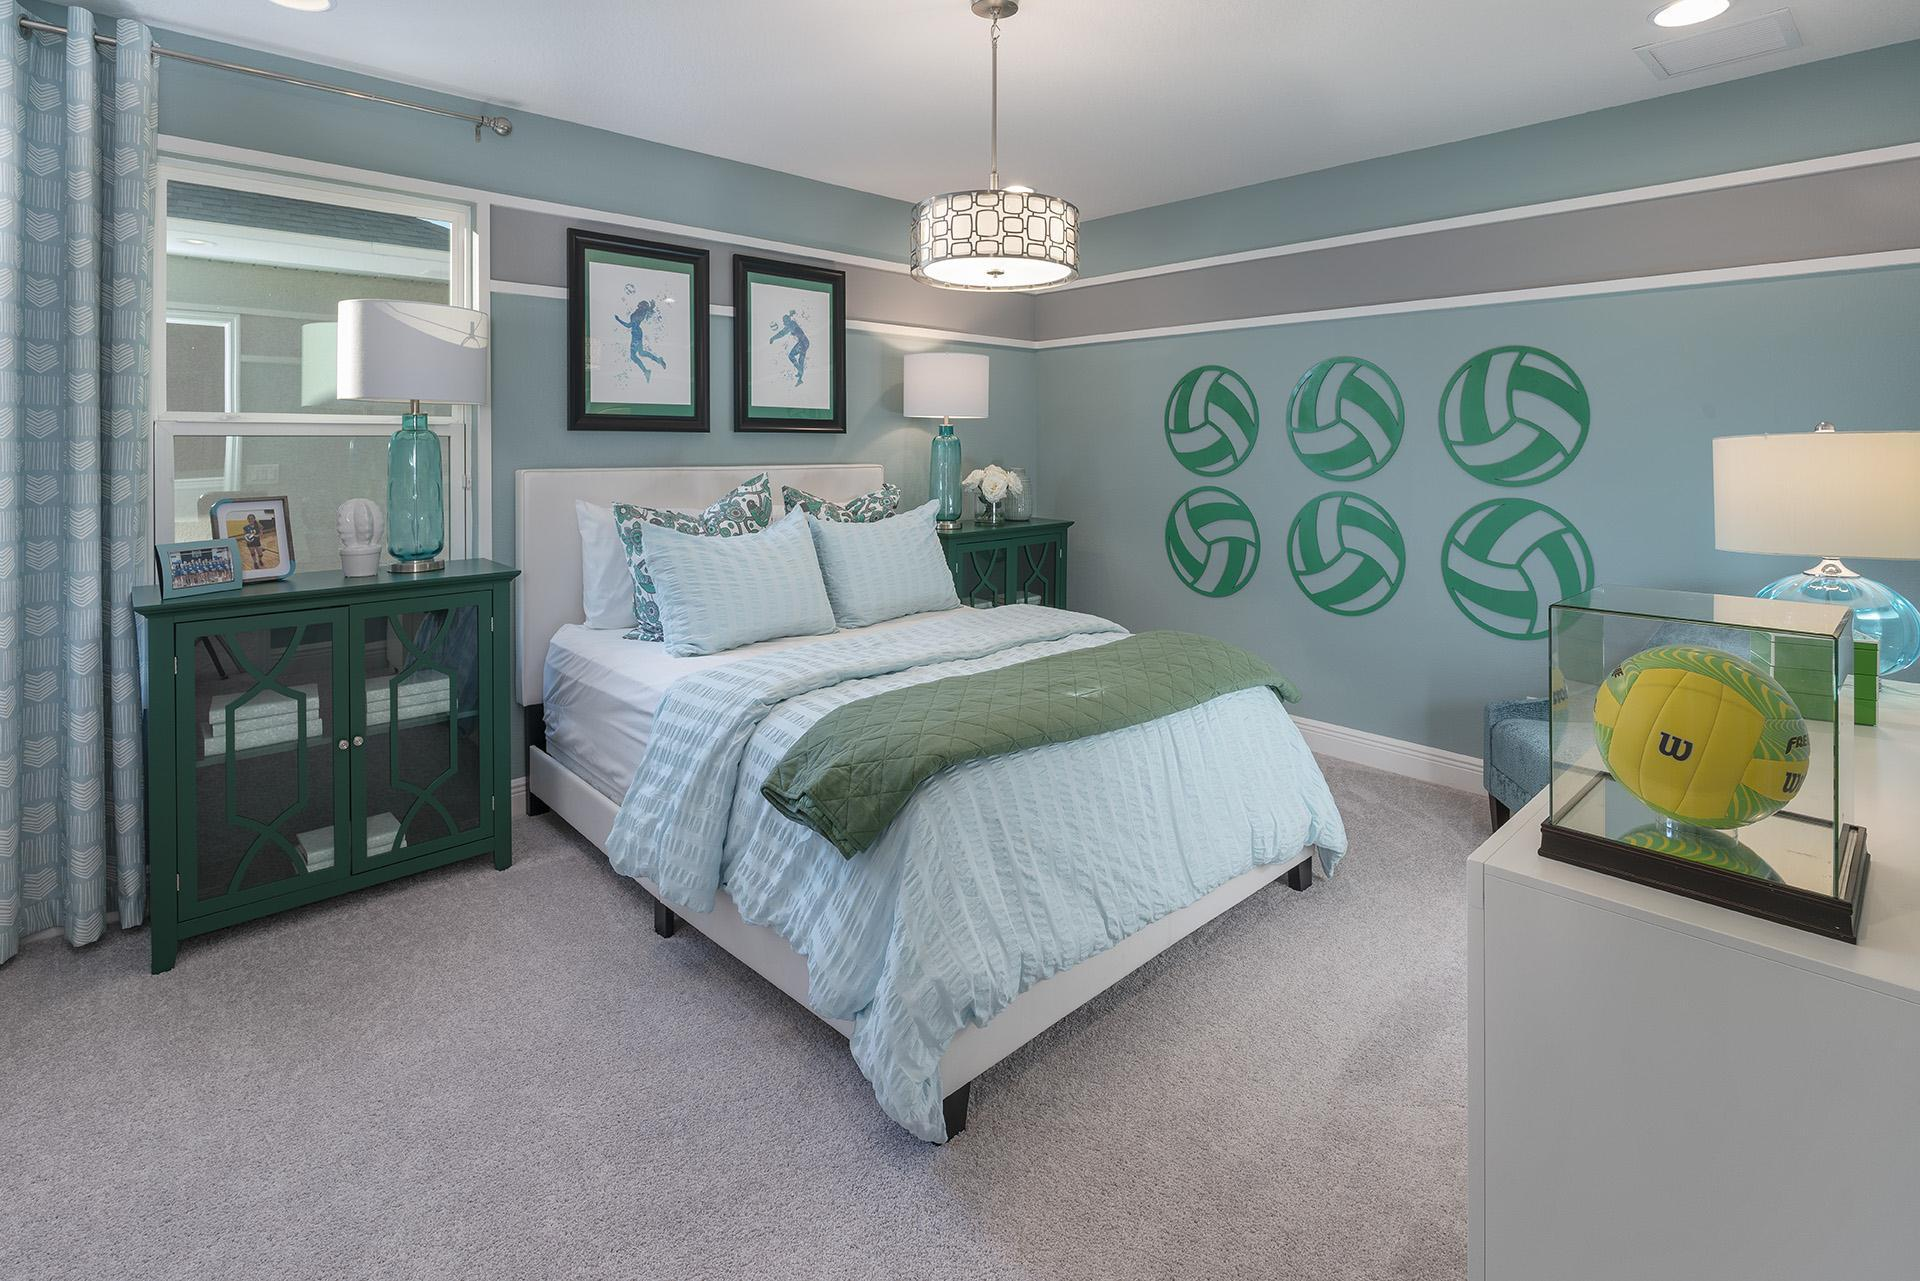 Bedroom featured in the Osceola Premier By Hanover Family Builders in Orlando, FL